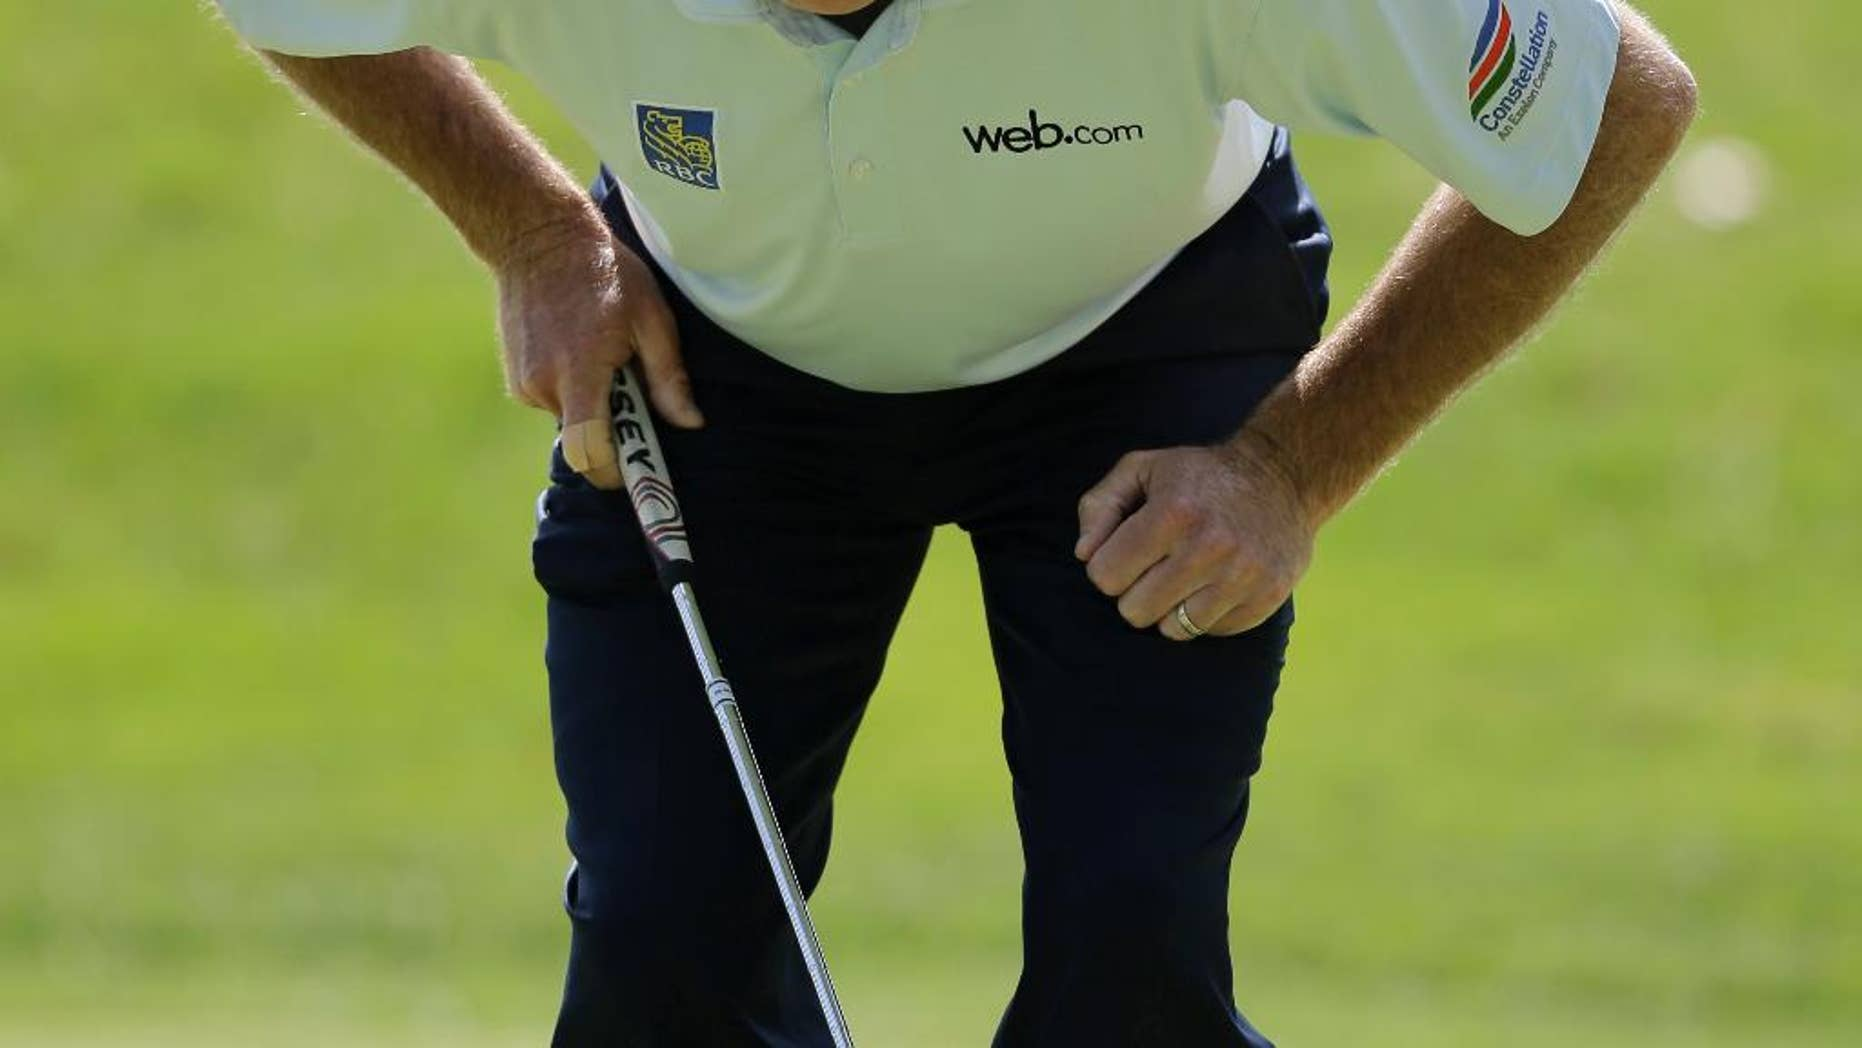 Jim Furyk lines up the putt on the 11th hole during the second round of the Bridgestone Invitational golf tournament at Firestone Country Club, Friday, Aug. 7, 2015, in Akron, Ohio. (AP Photo/Tony Dejak)